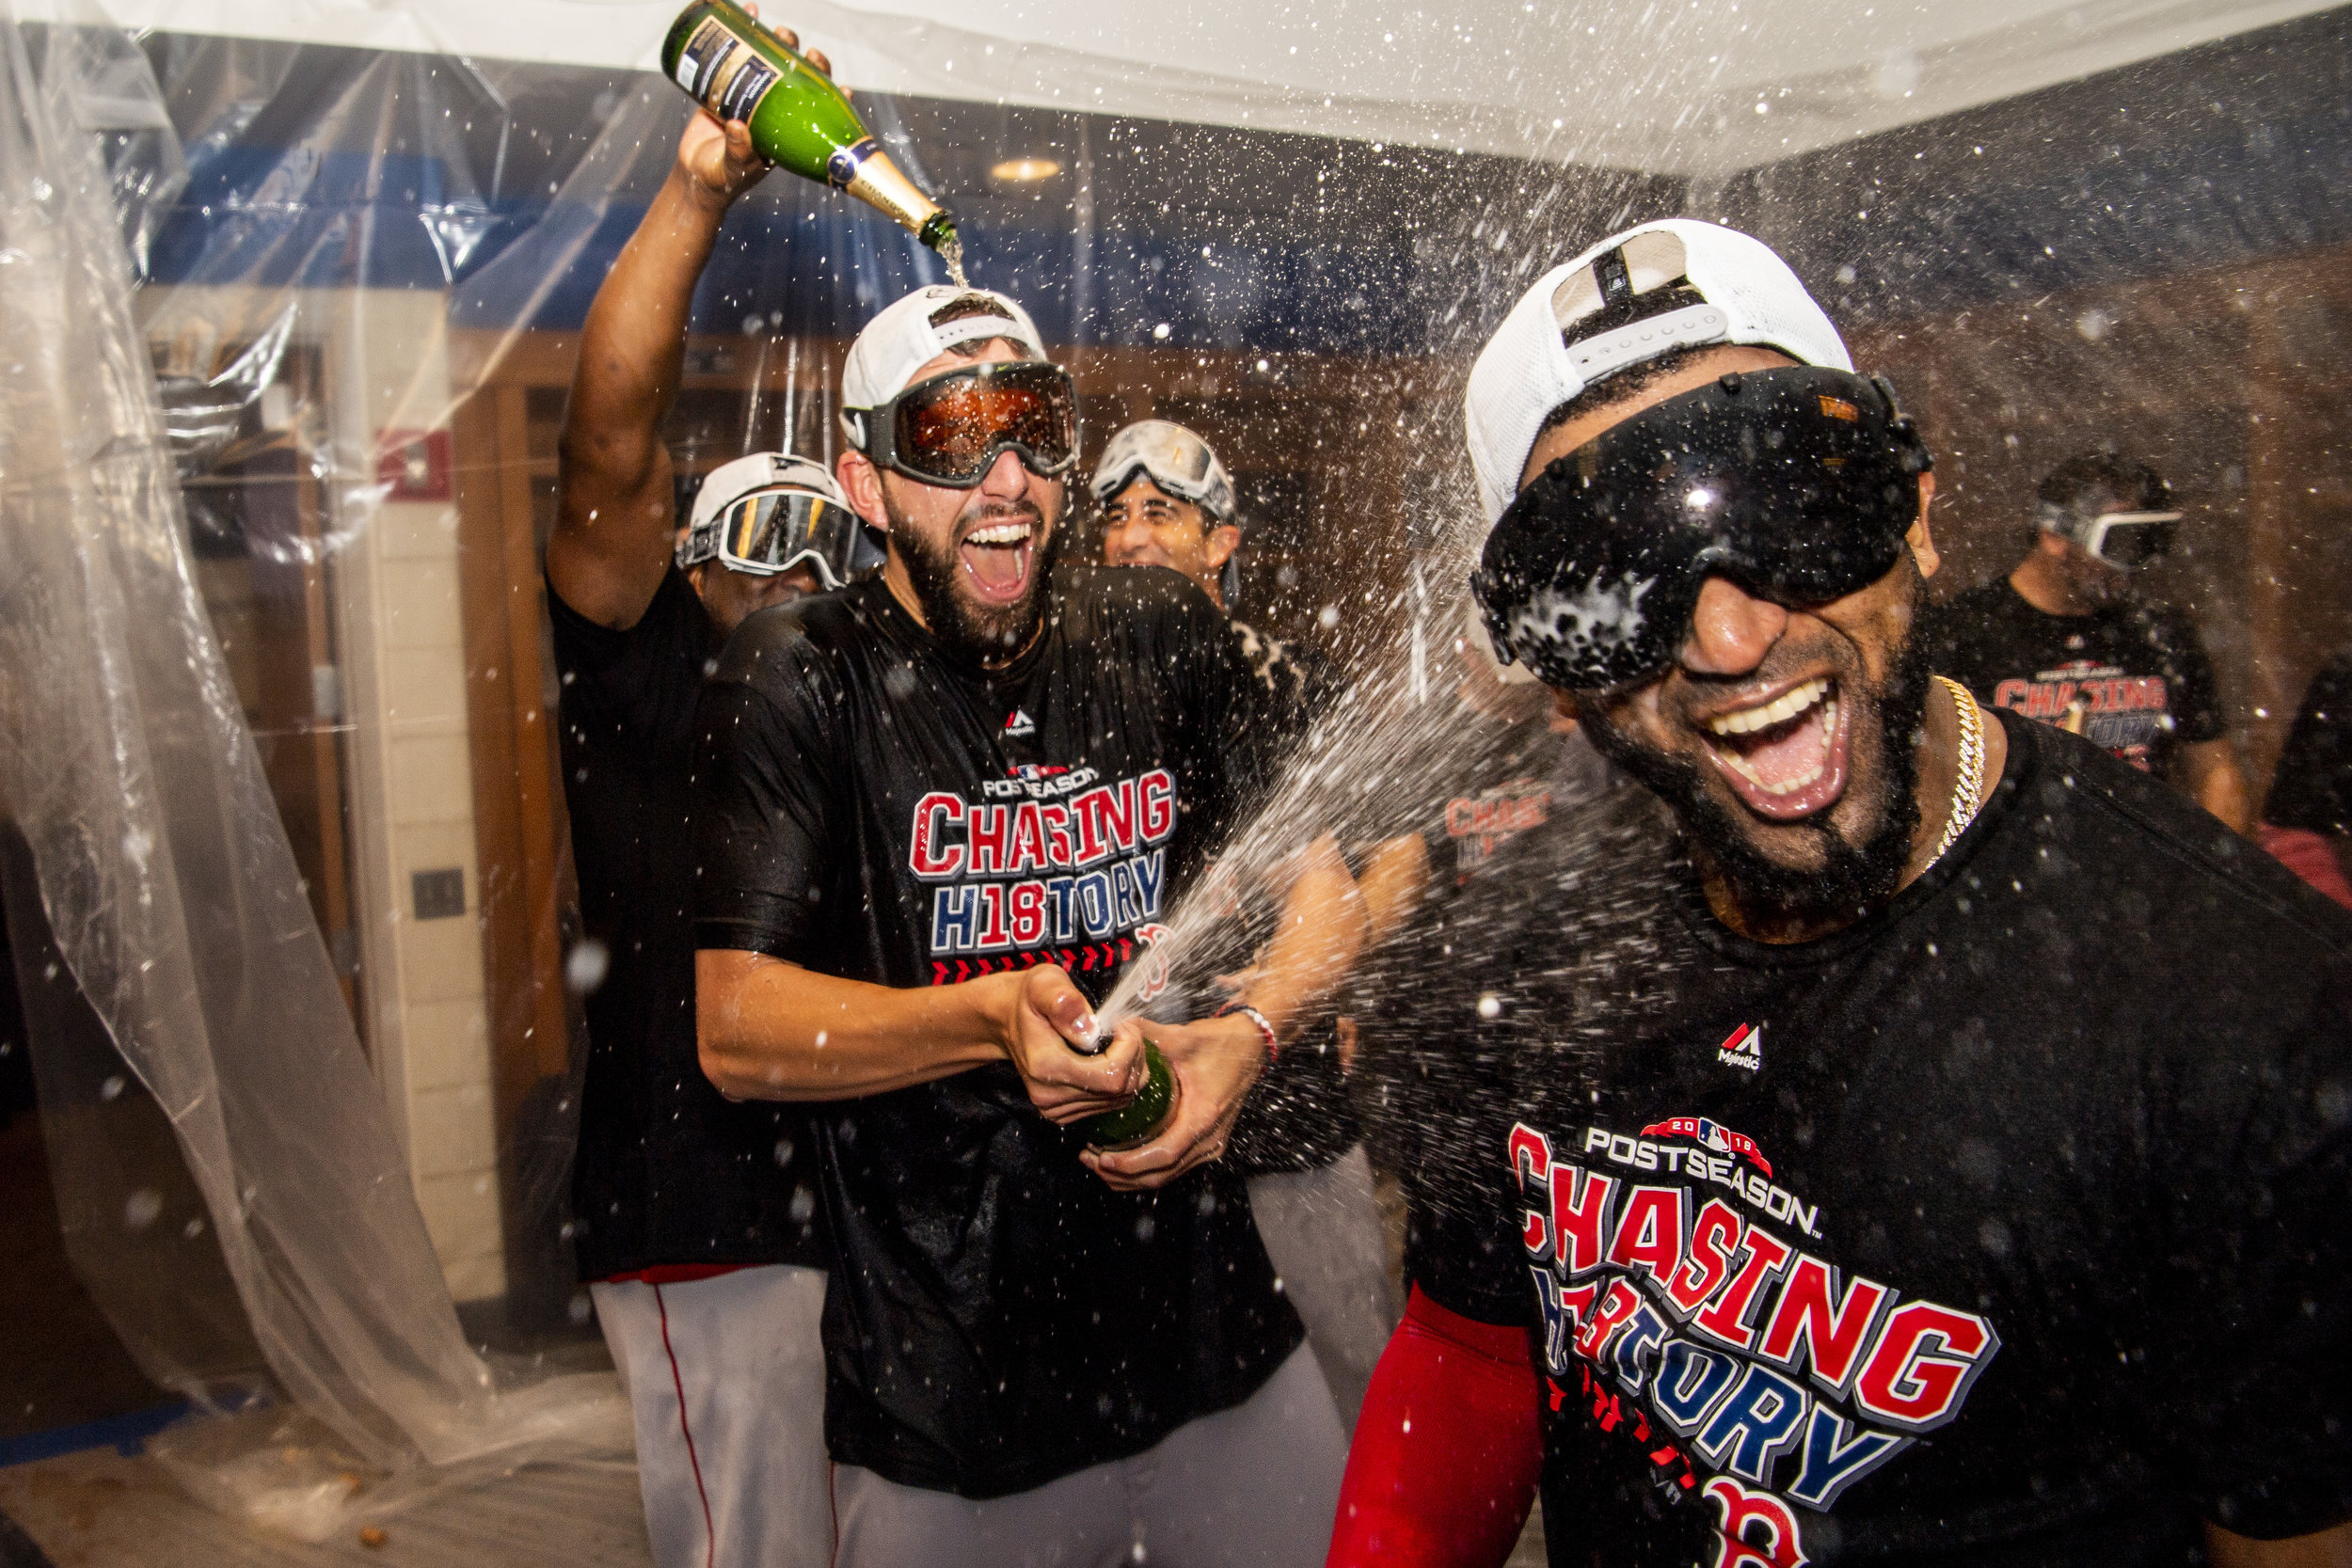 October 9, 2018, New York, NY: Boston Red Sox pitcher Matt Barnes sprays champagne on Boston Red Sox second basemen Eduardo Nunez after the Boston Red Sox defeated the New York Yankees in Game 4 of the ALDS to win the series at Yankee Stadium in New York, New York on Tuesday, October 9, 2018. (Photo by Matthew Thomas/Boston Red Sox)